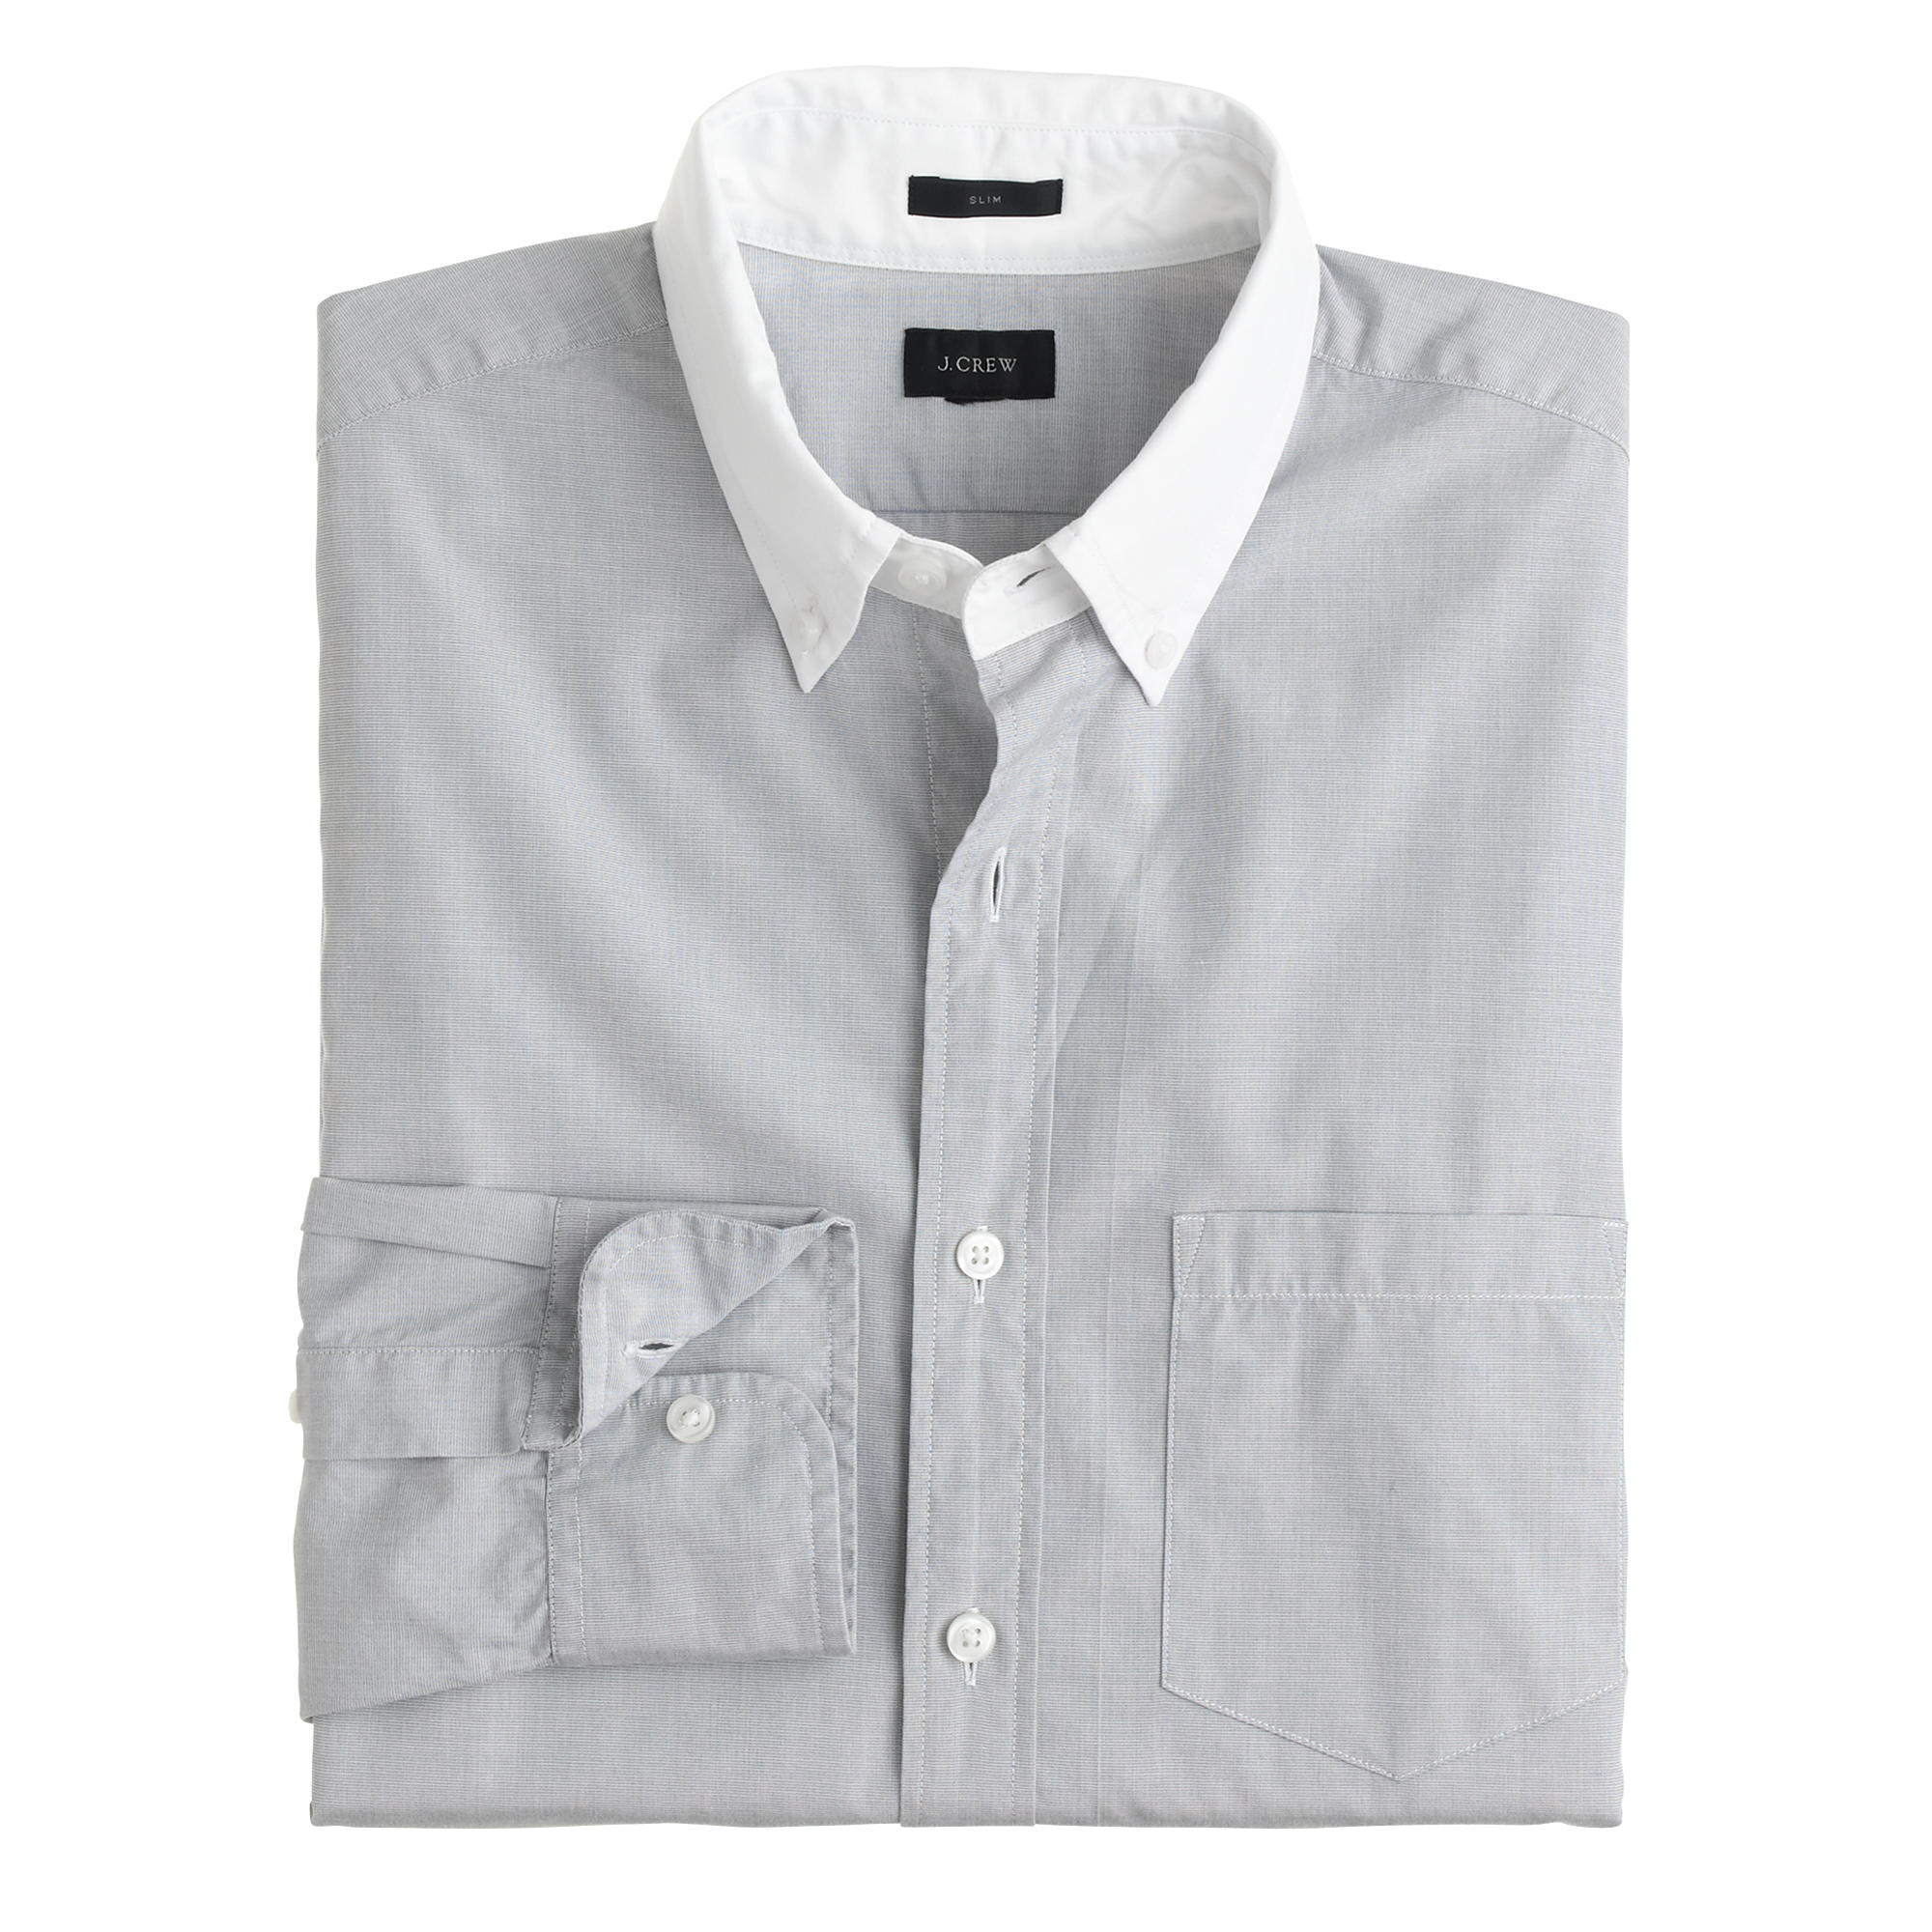 secret wash white collar shirt in end on end cotton